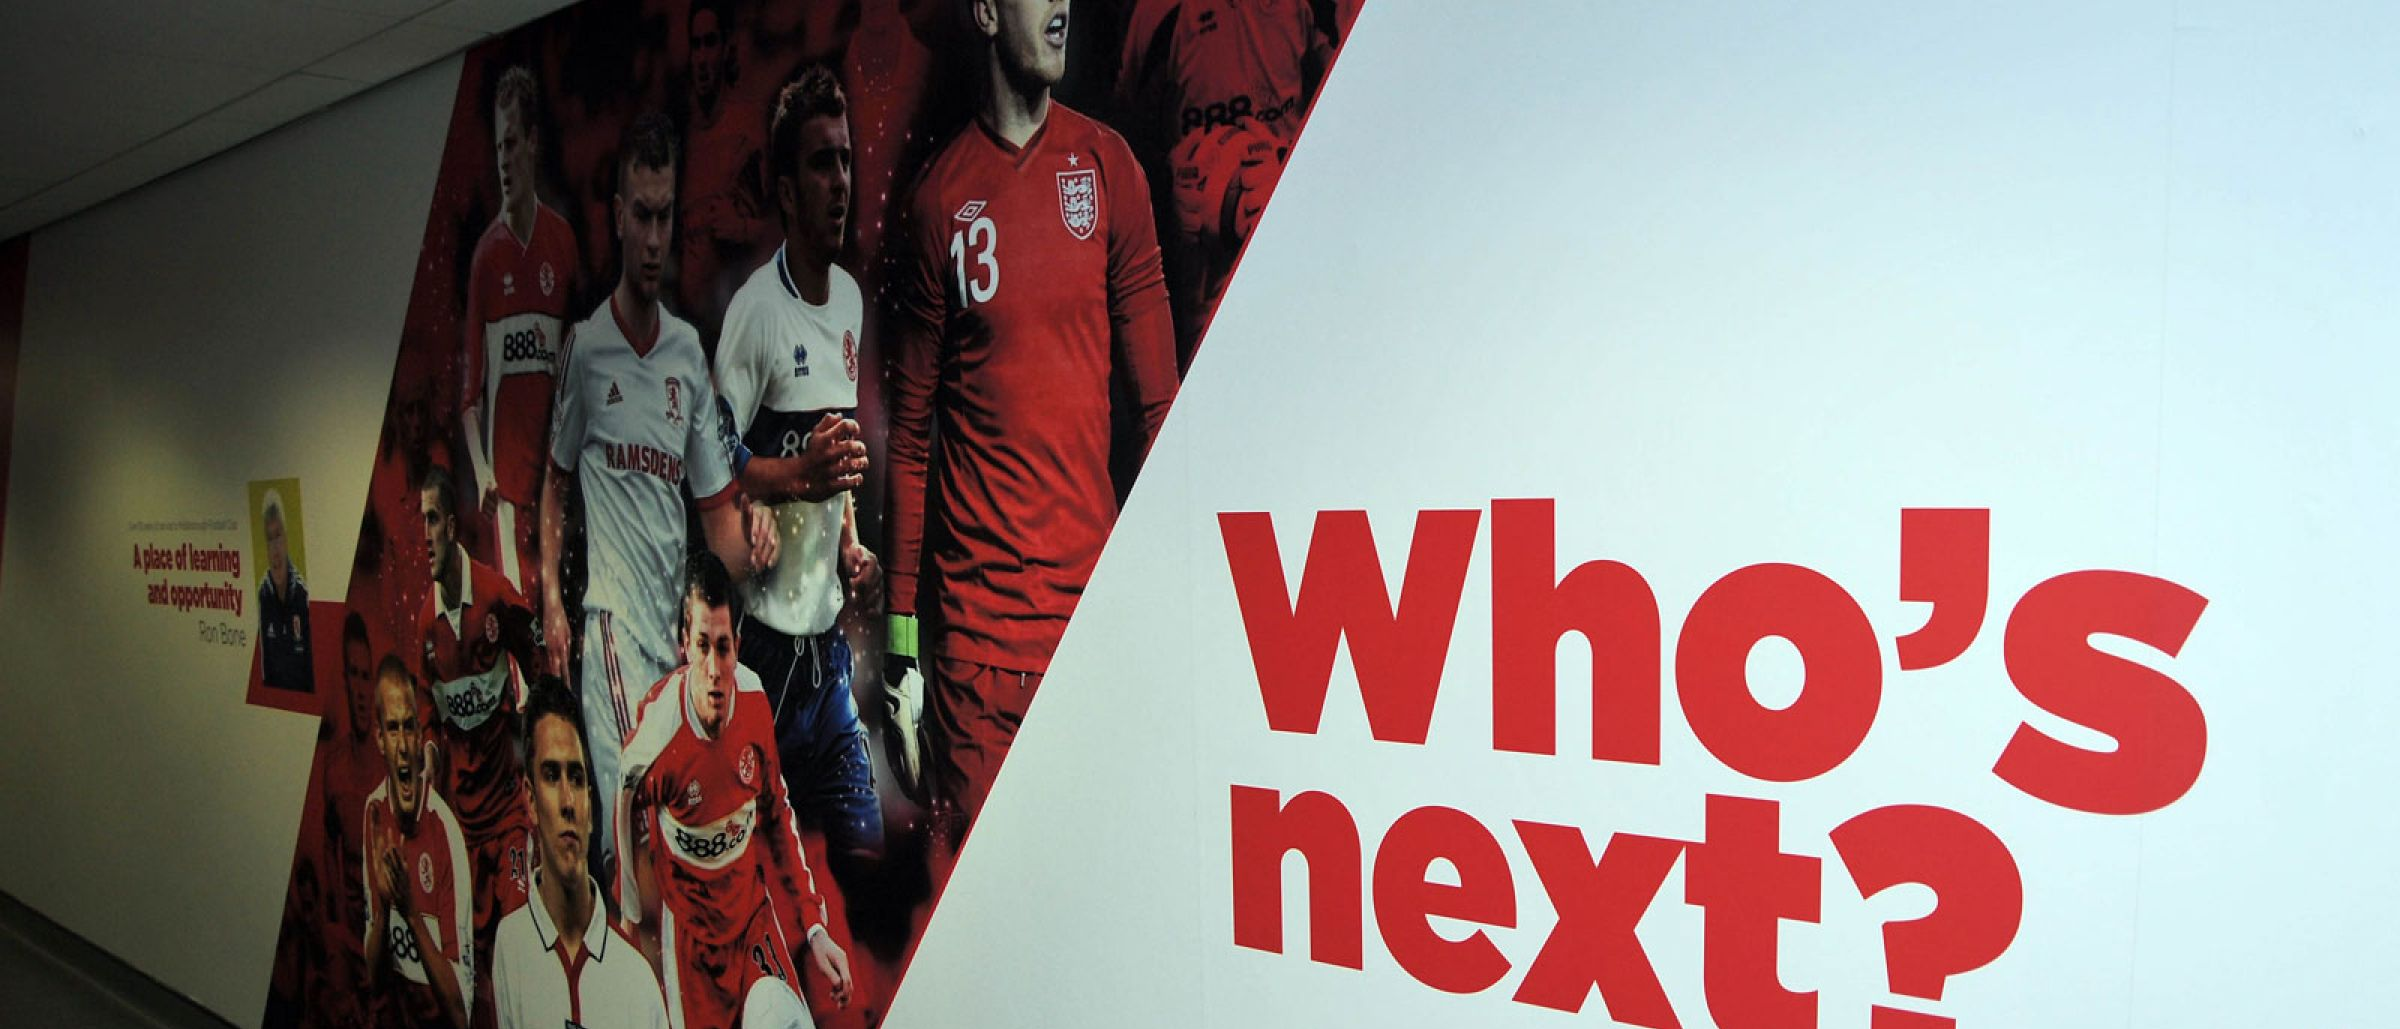 Academy Wall- Who's Next?